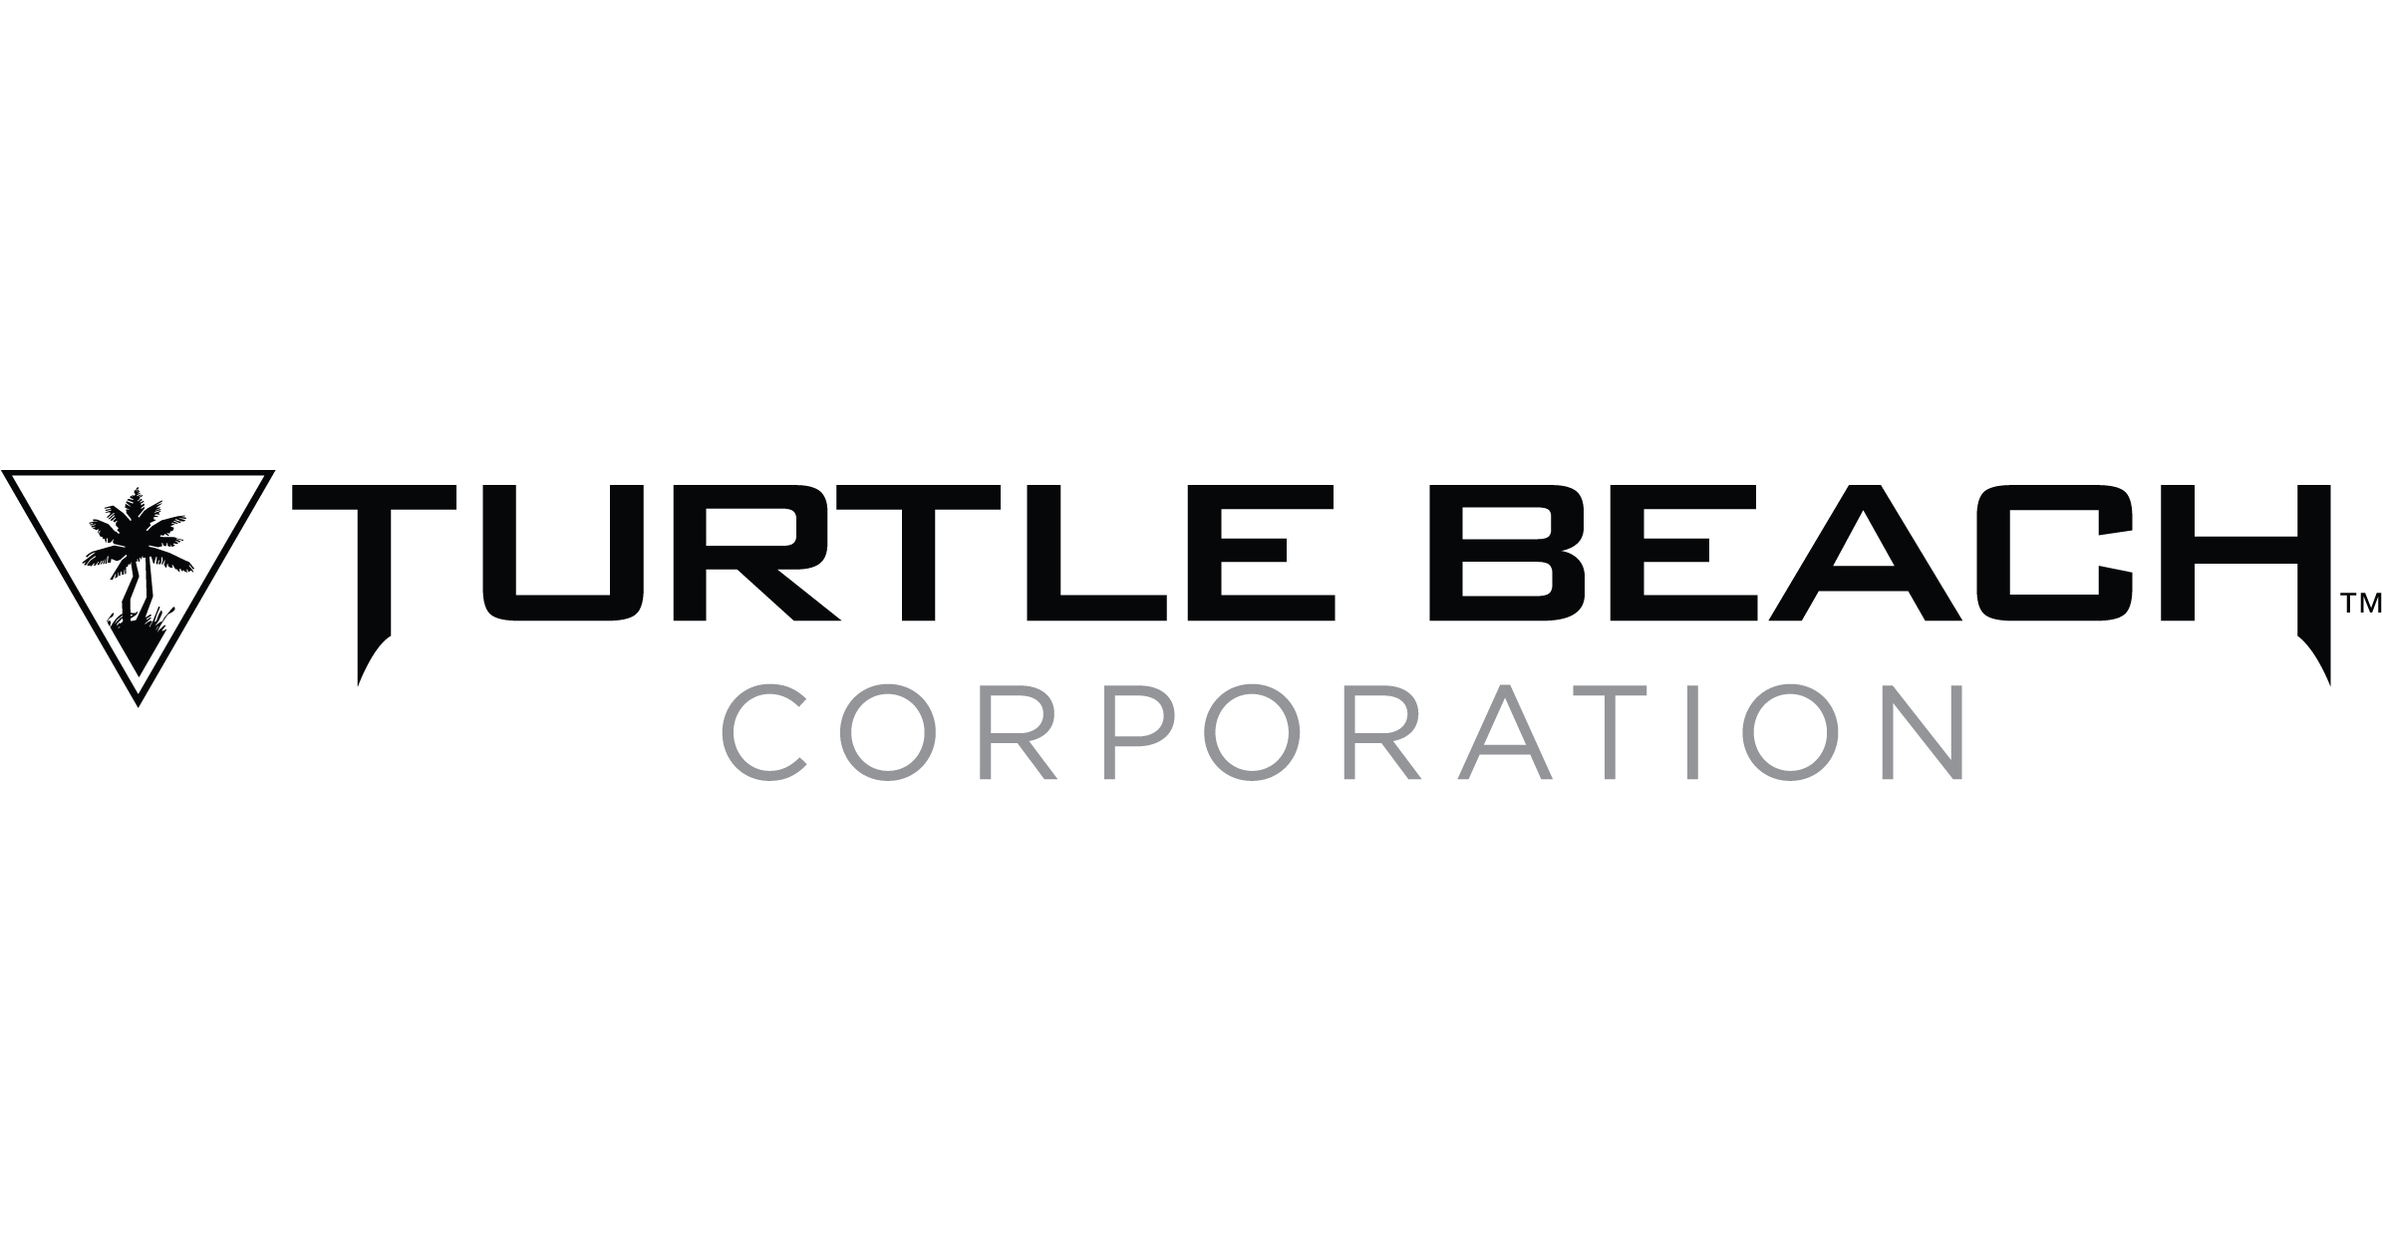 WHITE PLAINS, N.Y., March 4, 2021 /PRNewswire/ -- Turtle Beach Corporation (Nasdaq: HEAR), a leading gaming accessory business, reported financial results for the fourth quarter and full year ended December 31, 2020. 2020 Full-Year Summary vs. 2019: Net reven…